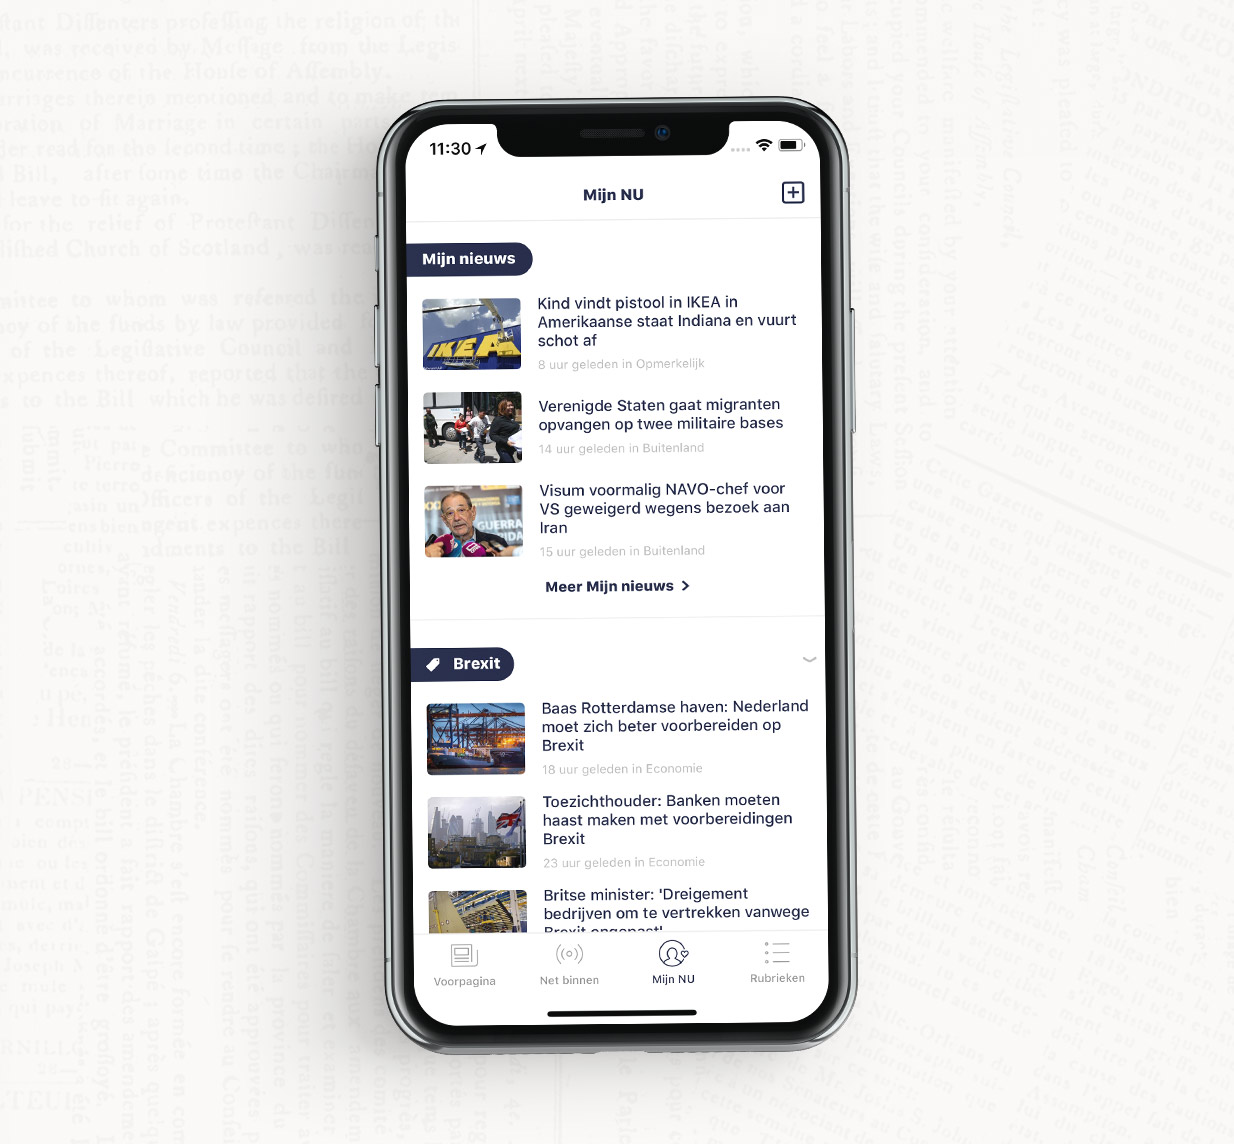 Mijn NU offers a personal view of the news, based on the topics you follow